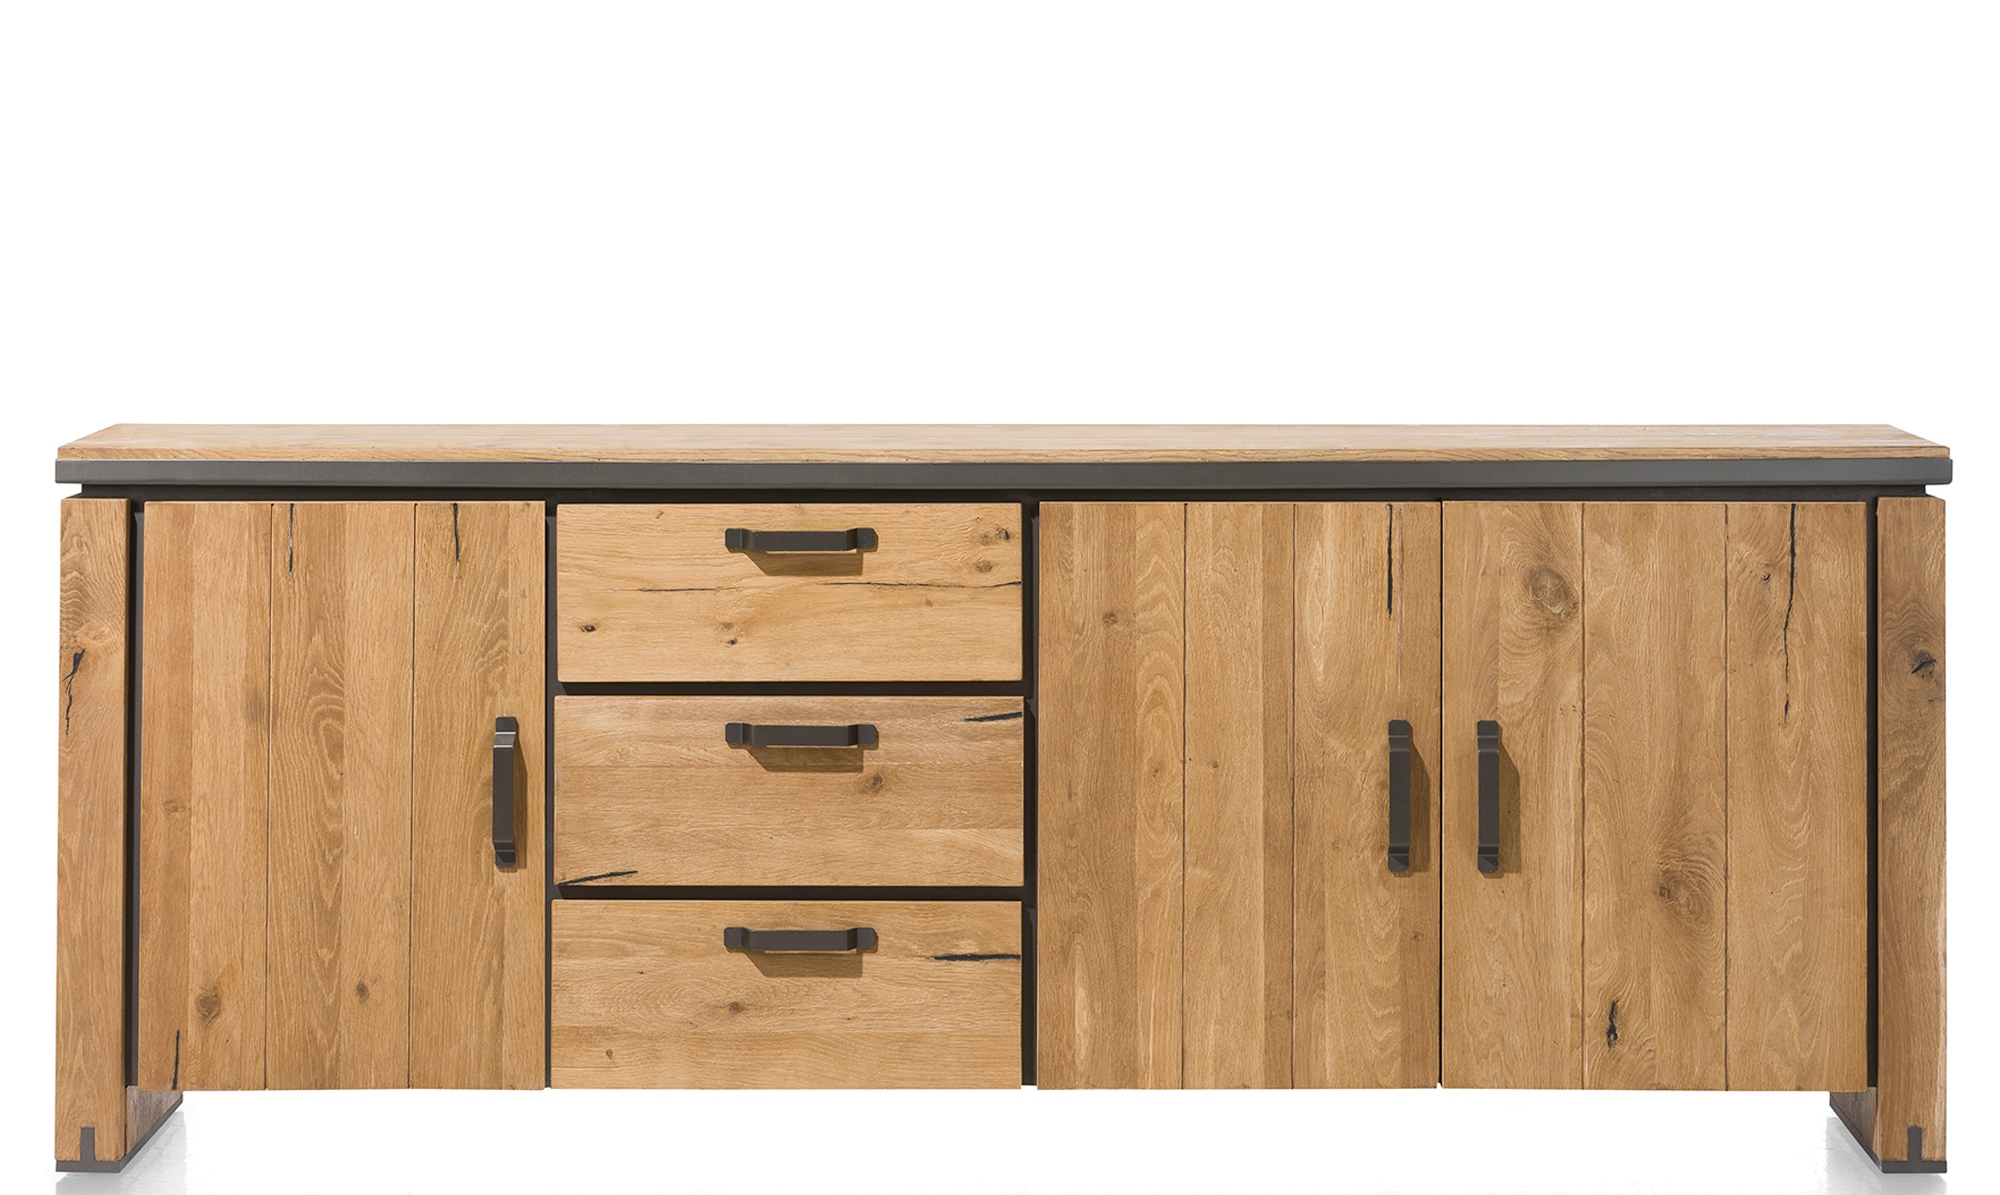 Newest Benchwright Bar Height Dining Tables with regard to Benchwright - 210Cm 3 Door 3 Drawer Sideboard